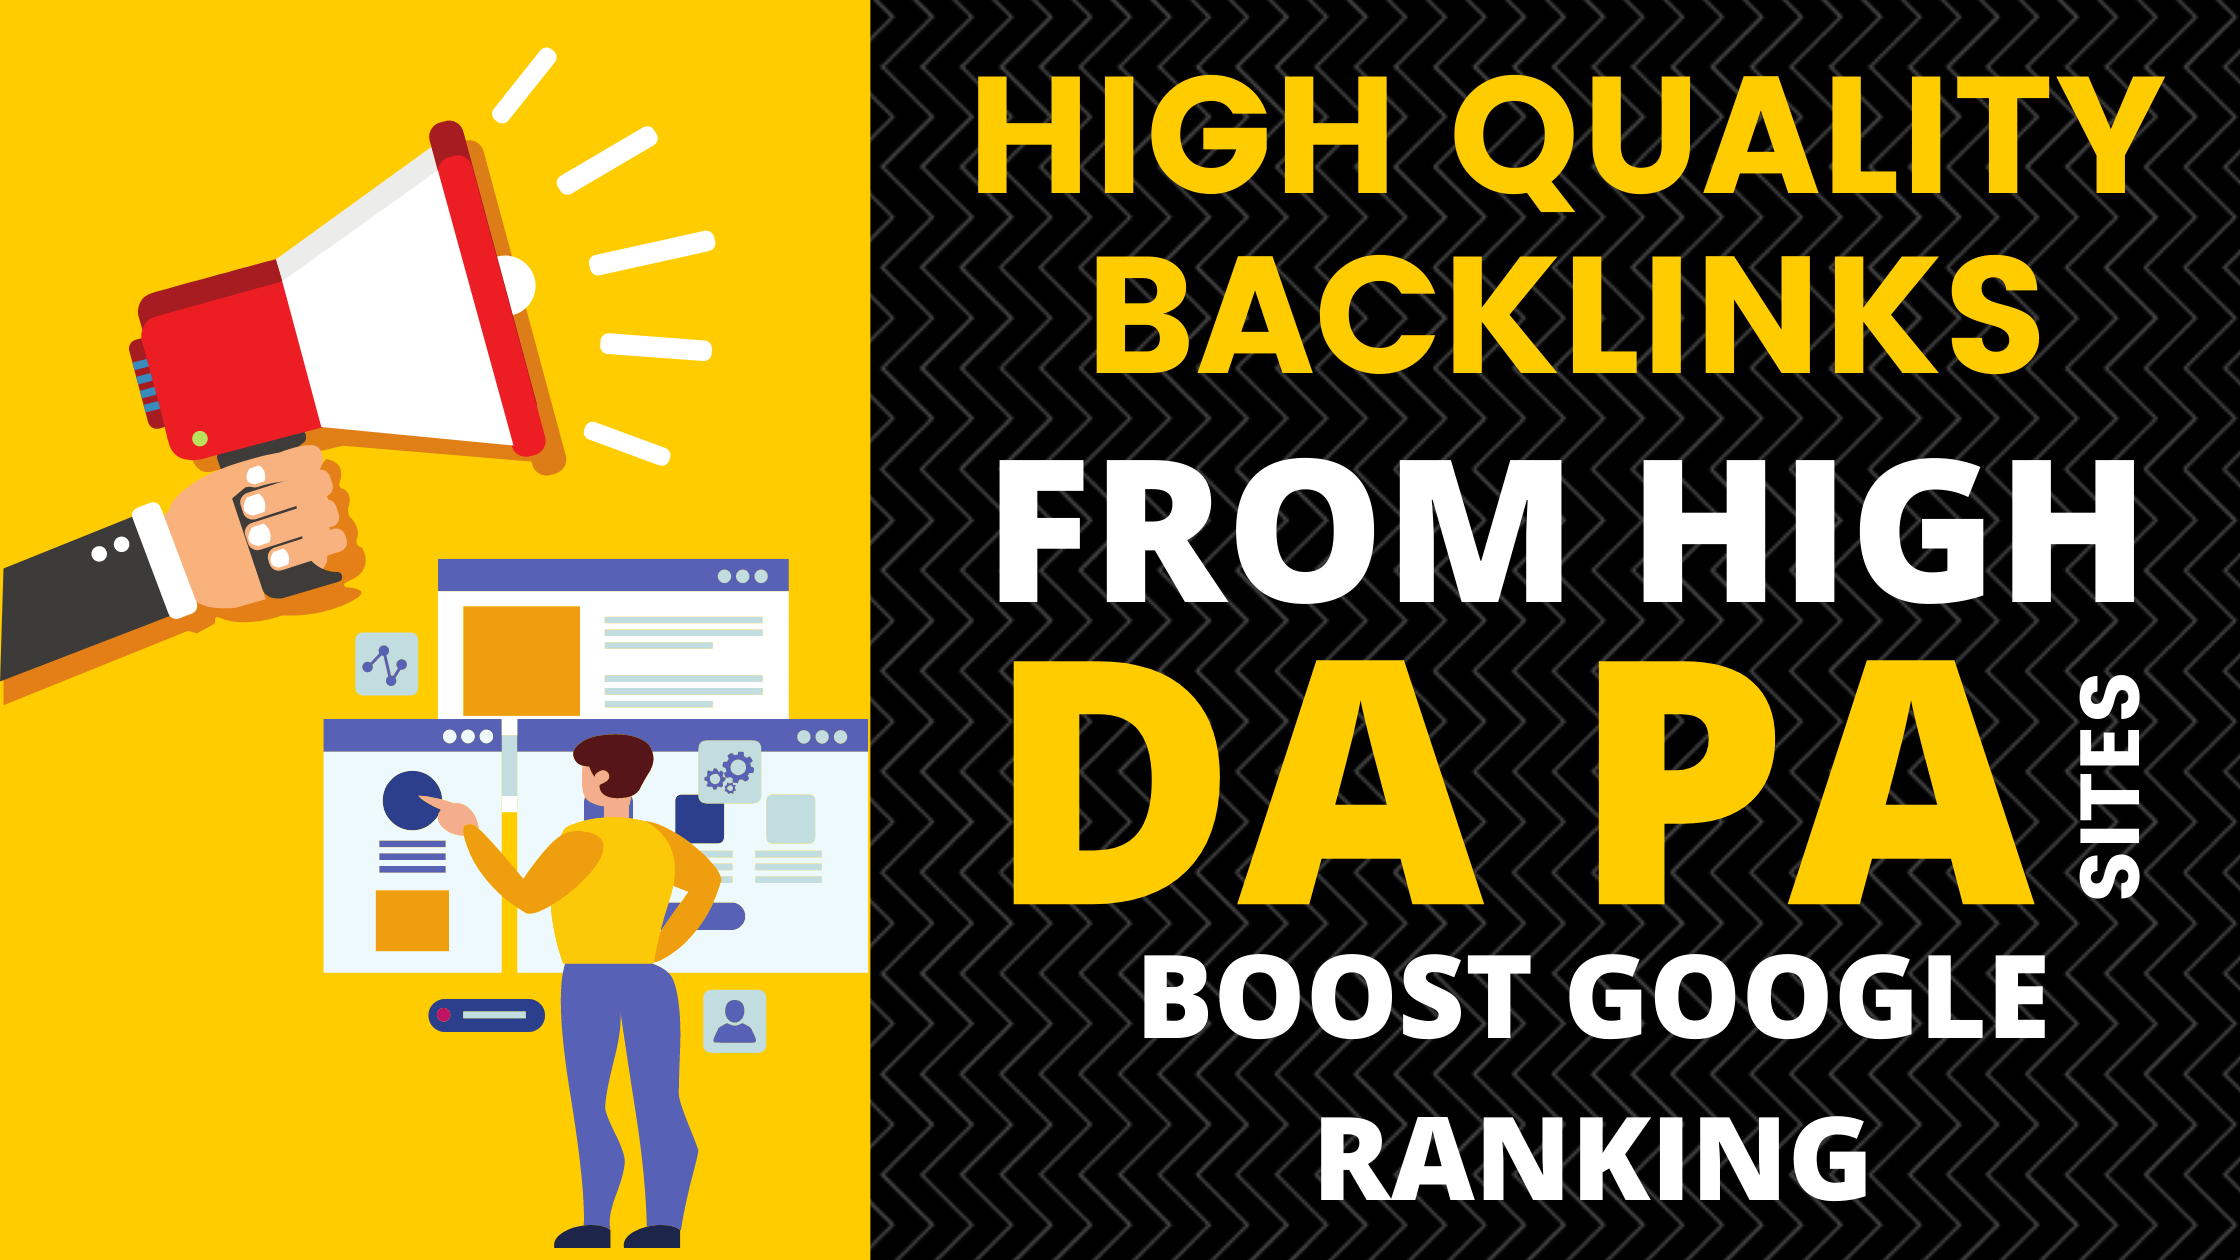 Build High Quality Dofollow Backlinks from High DA PA Sites and Boost Google Ranking